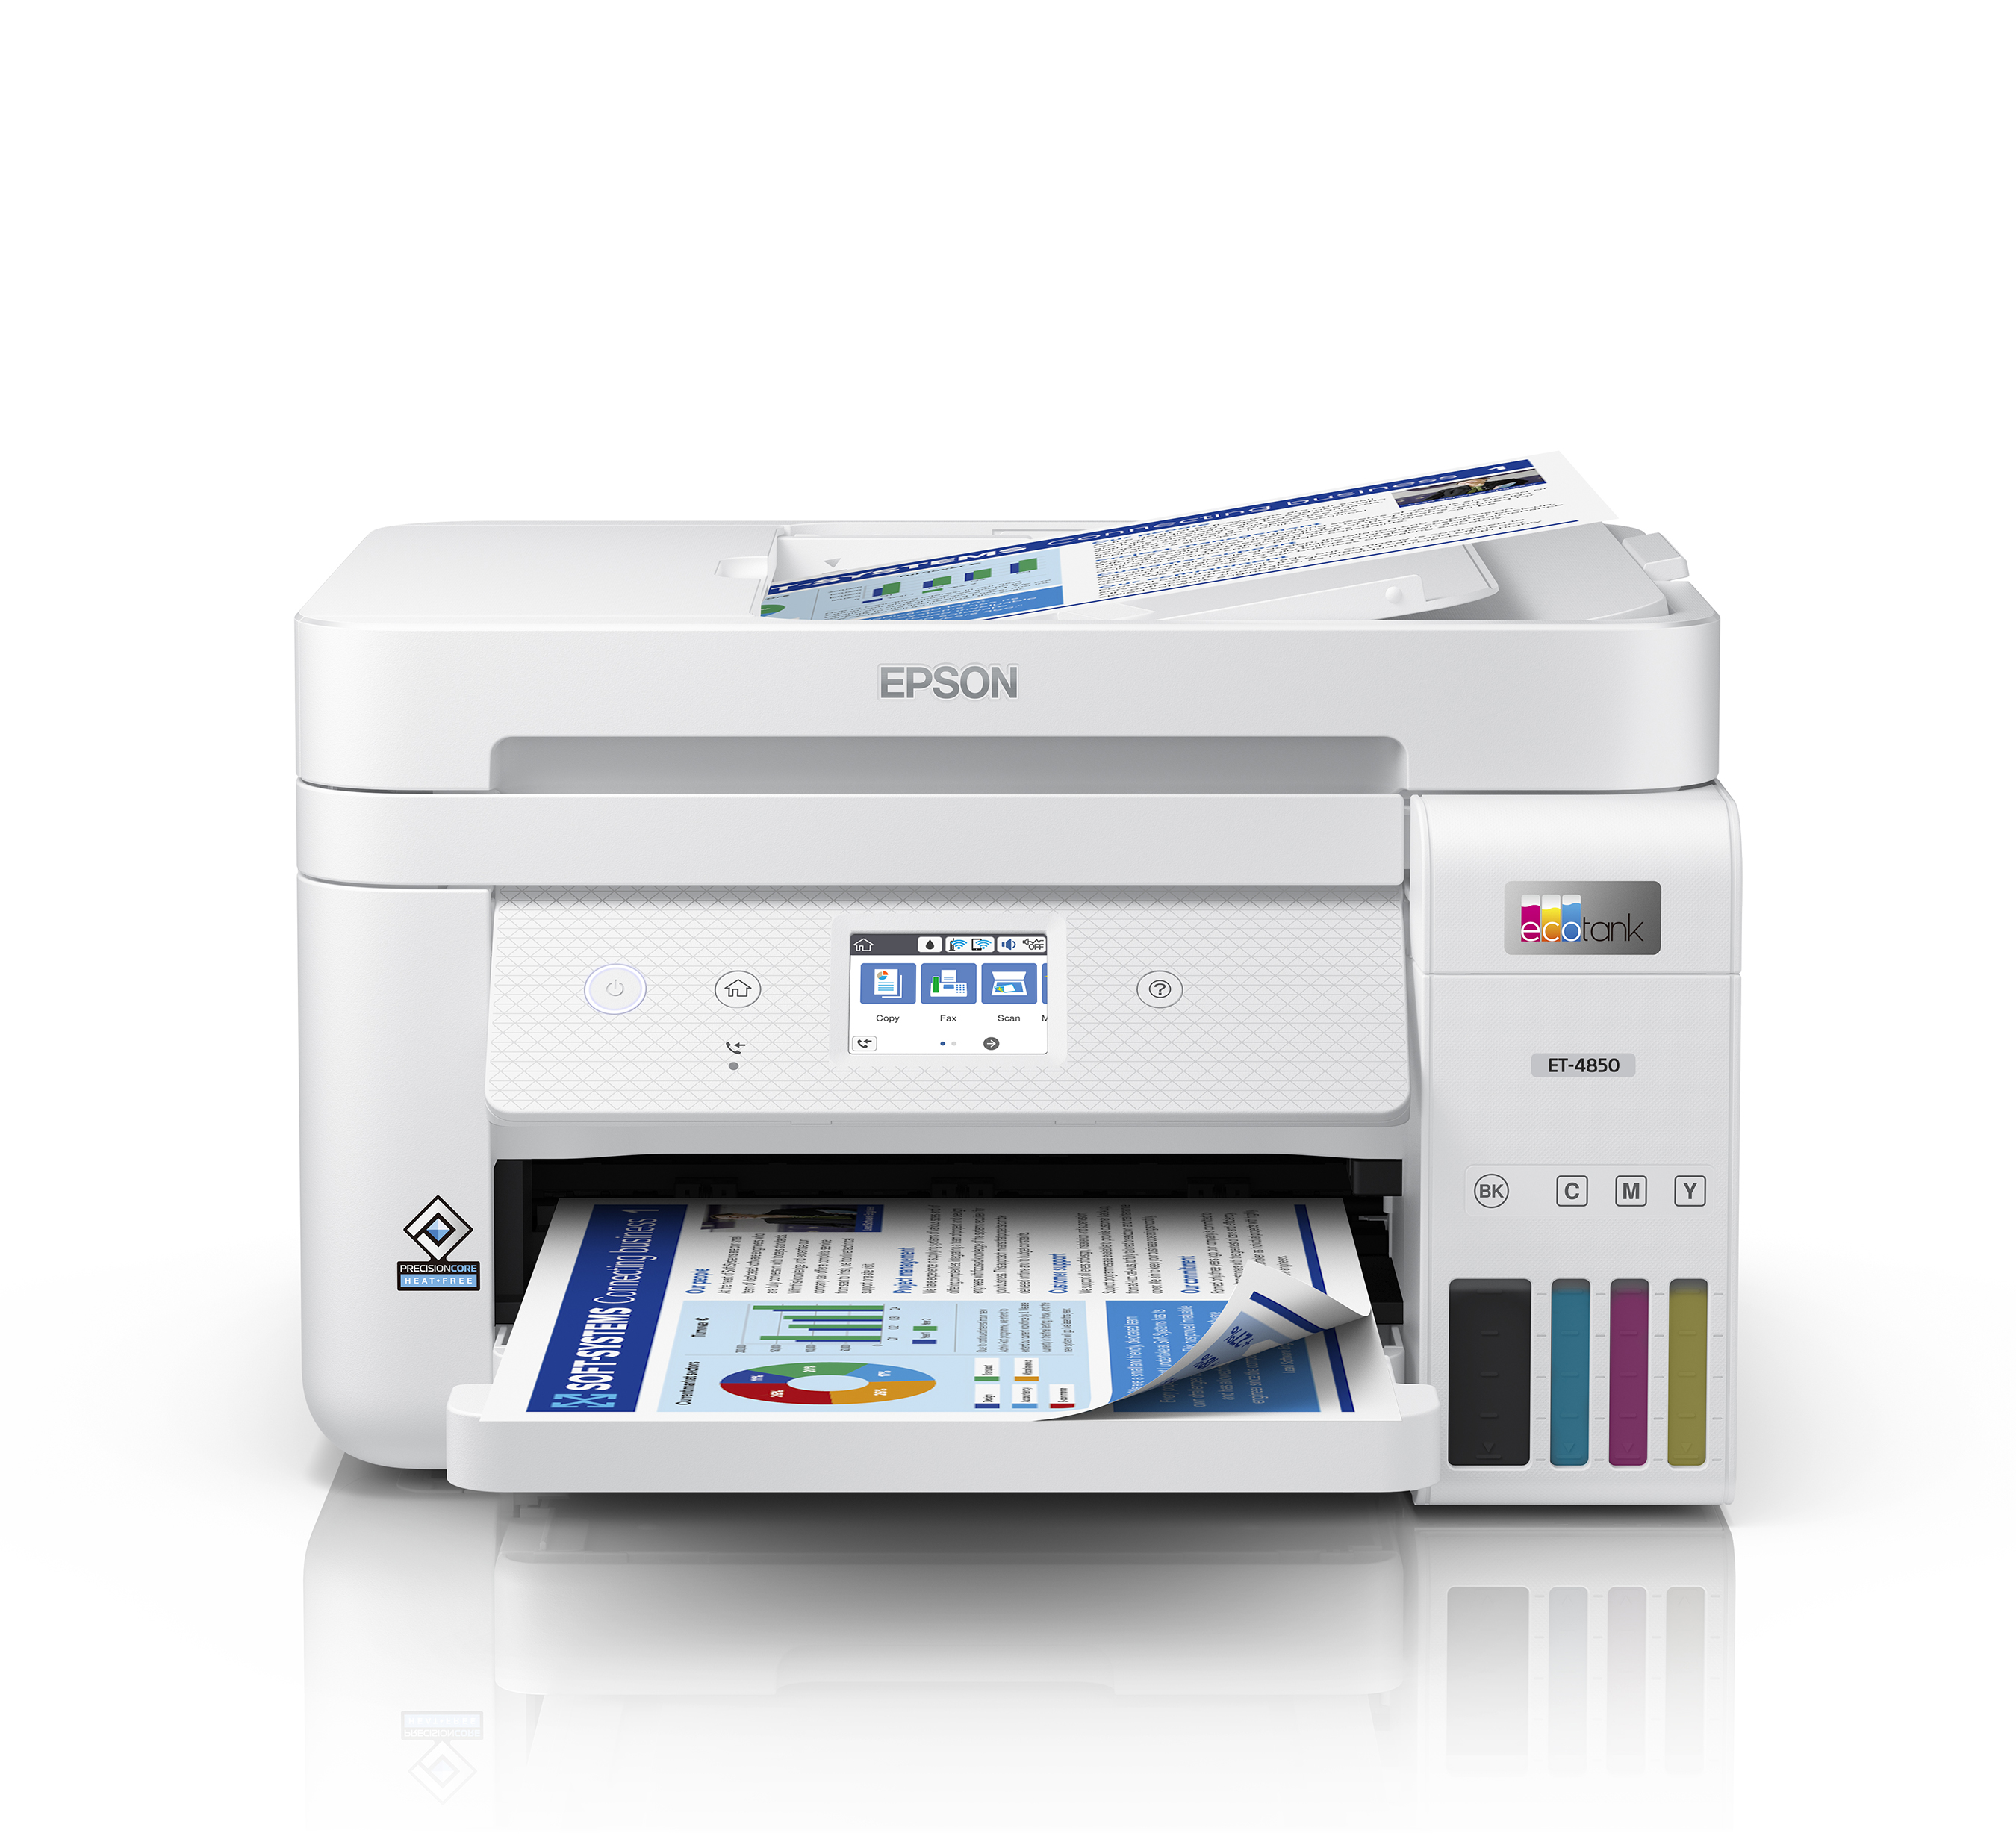 """The EcoTank ET-4850 offers premium productivity features - fax, productive paper handling, a high-resolution flatbed scanner, and a convenient 2.4"""" color touchscreen, making it the best option for office printing."""